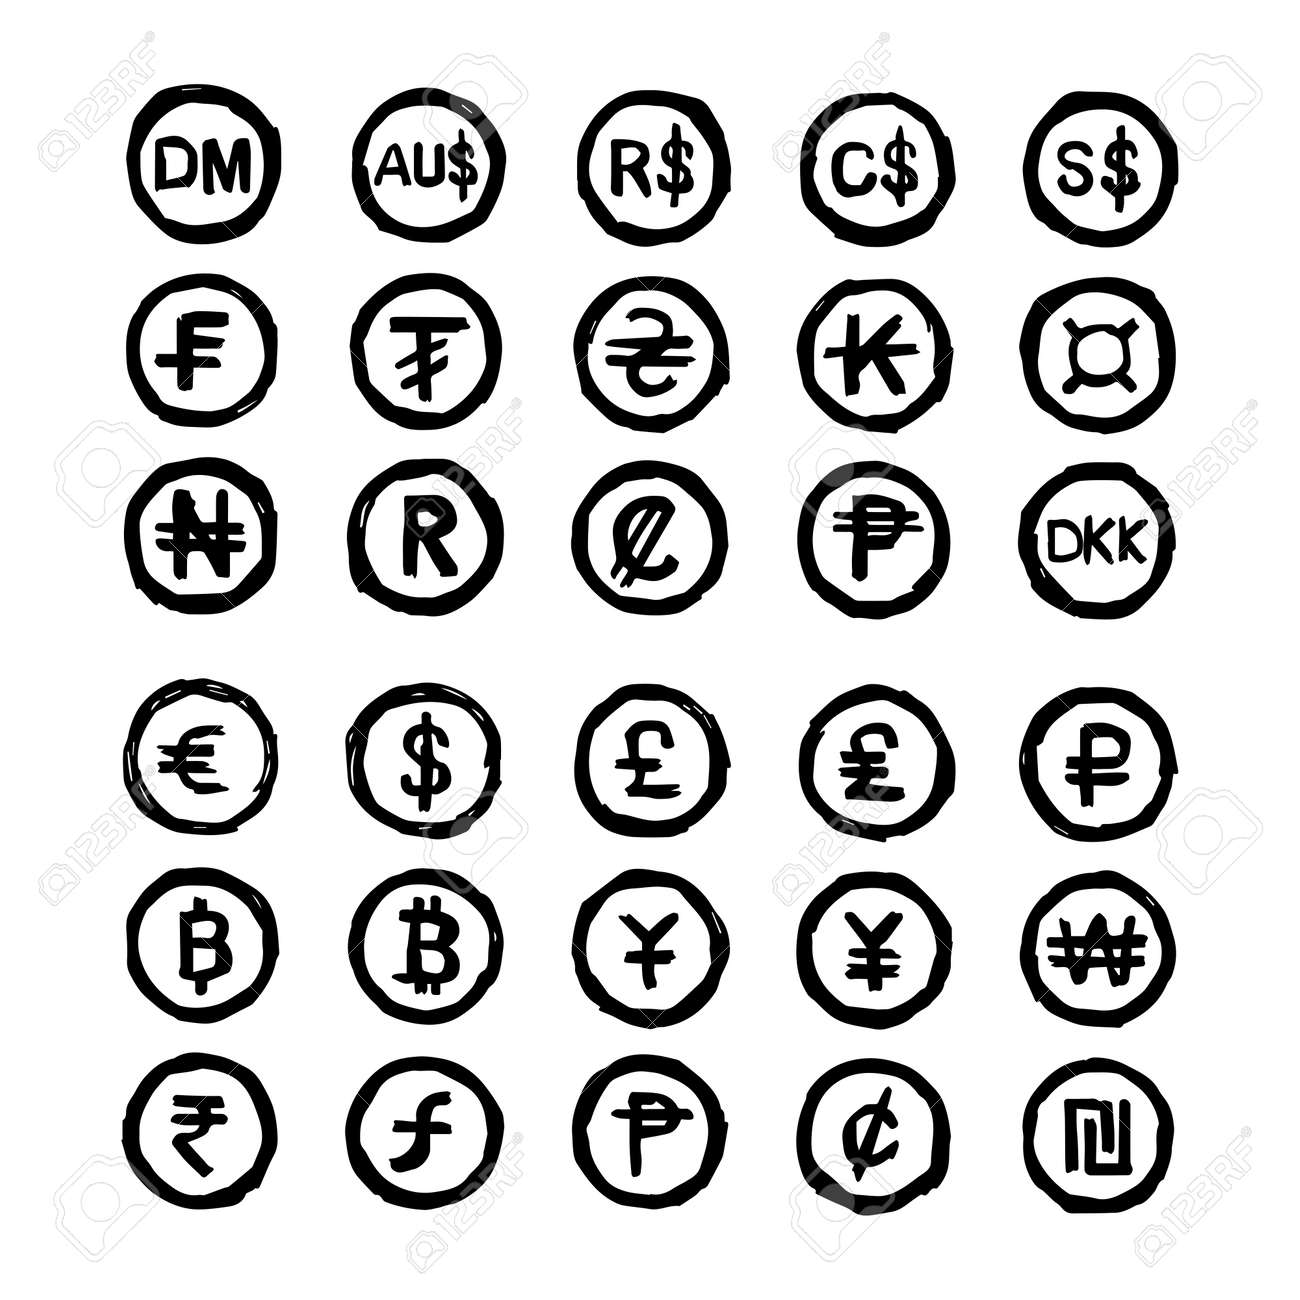 Illustration Vector Hand Drawn Doodles International Currency